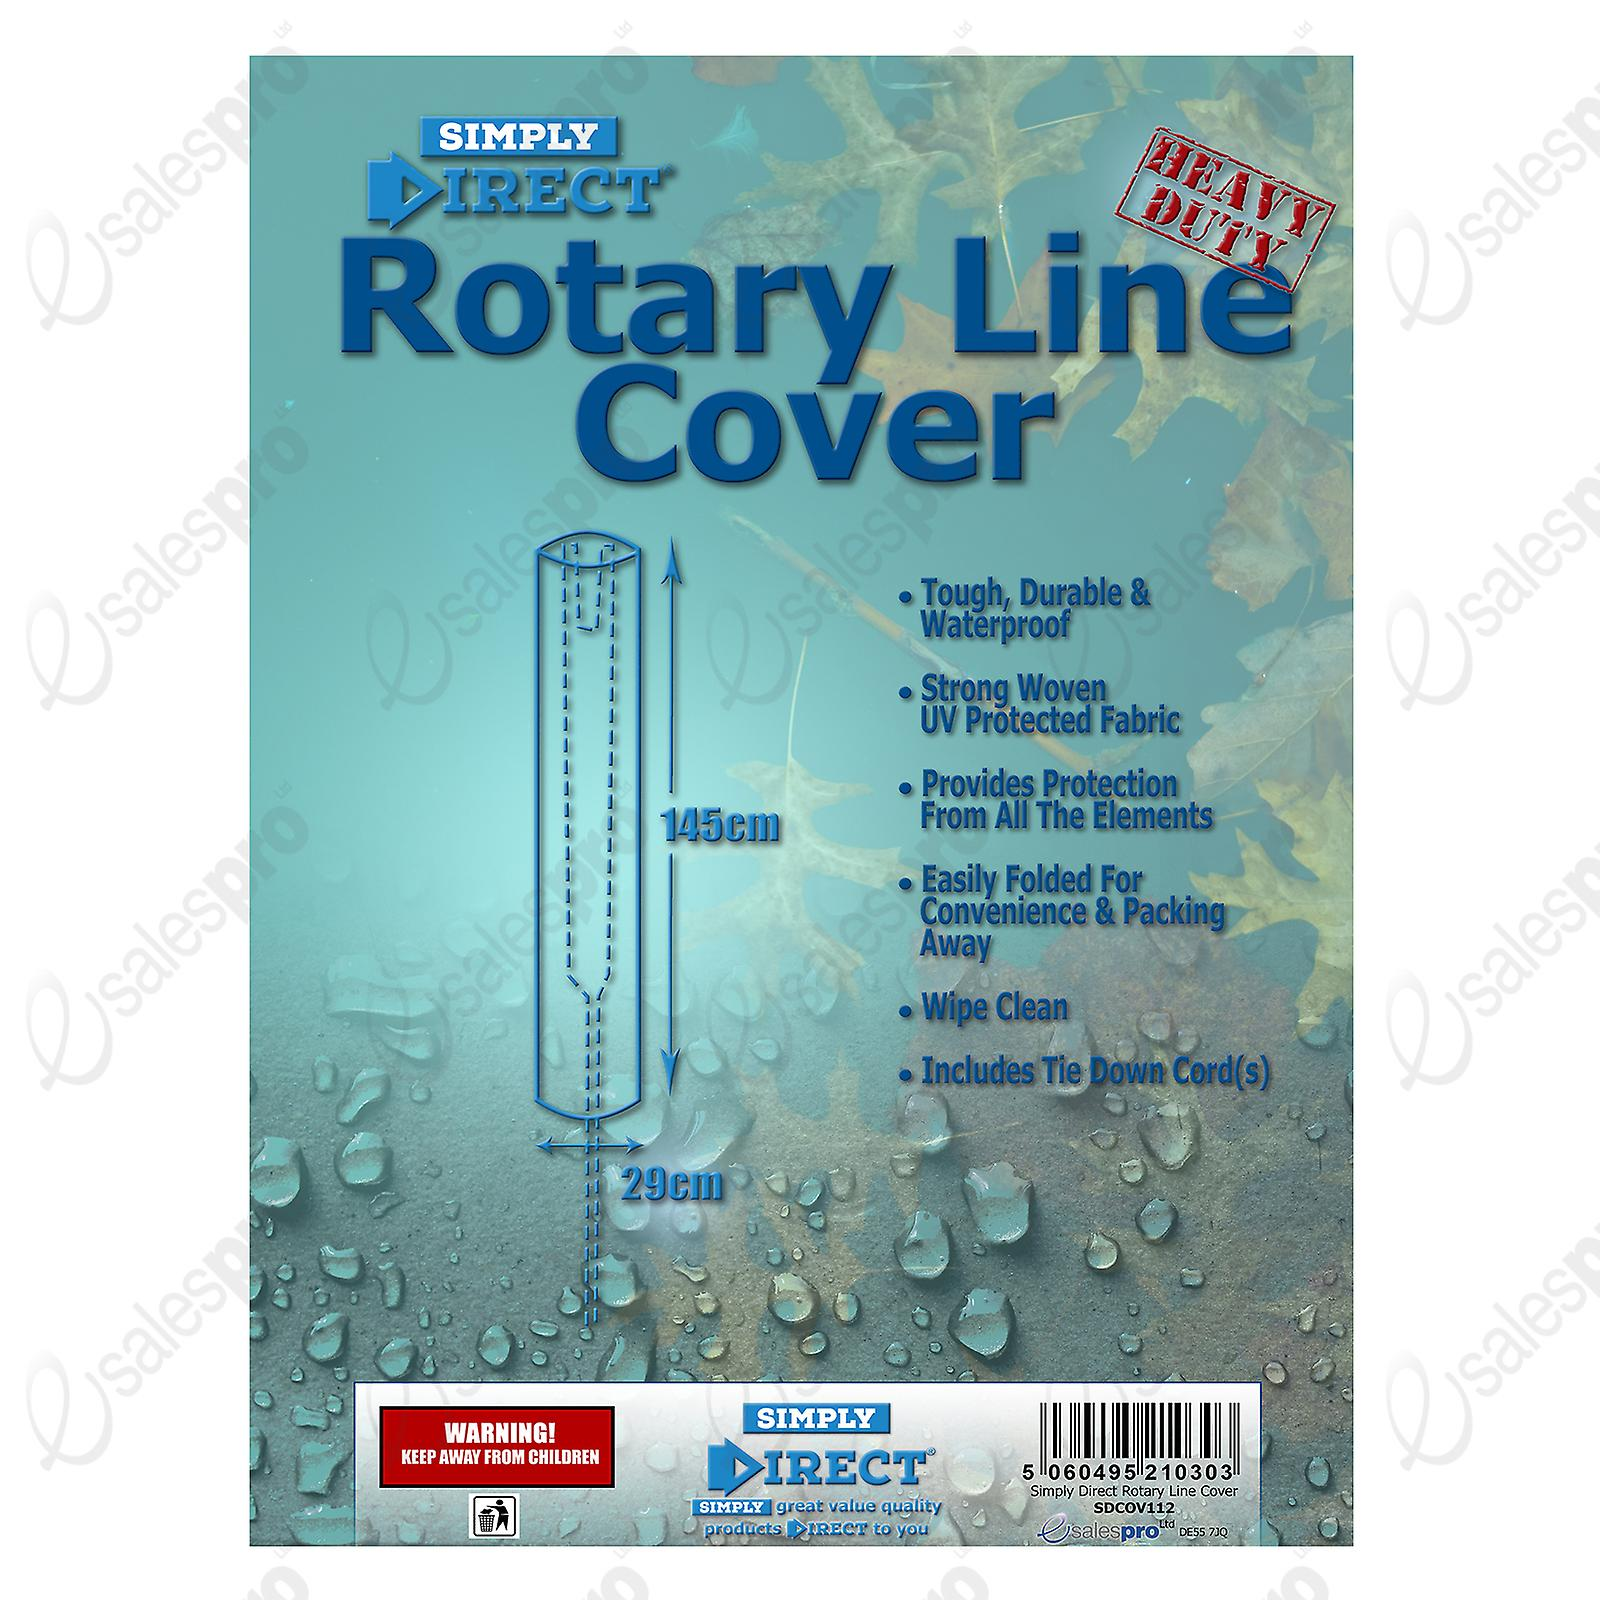 Simply Direct Rotary Line Cover - Waterproof Weatherproof Outdoor Protector